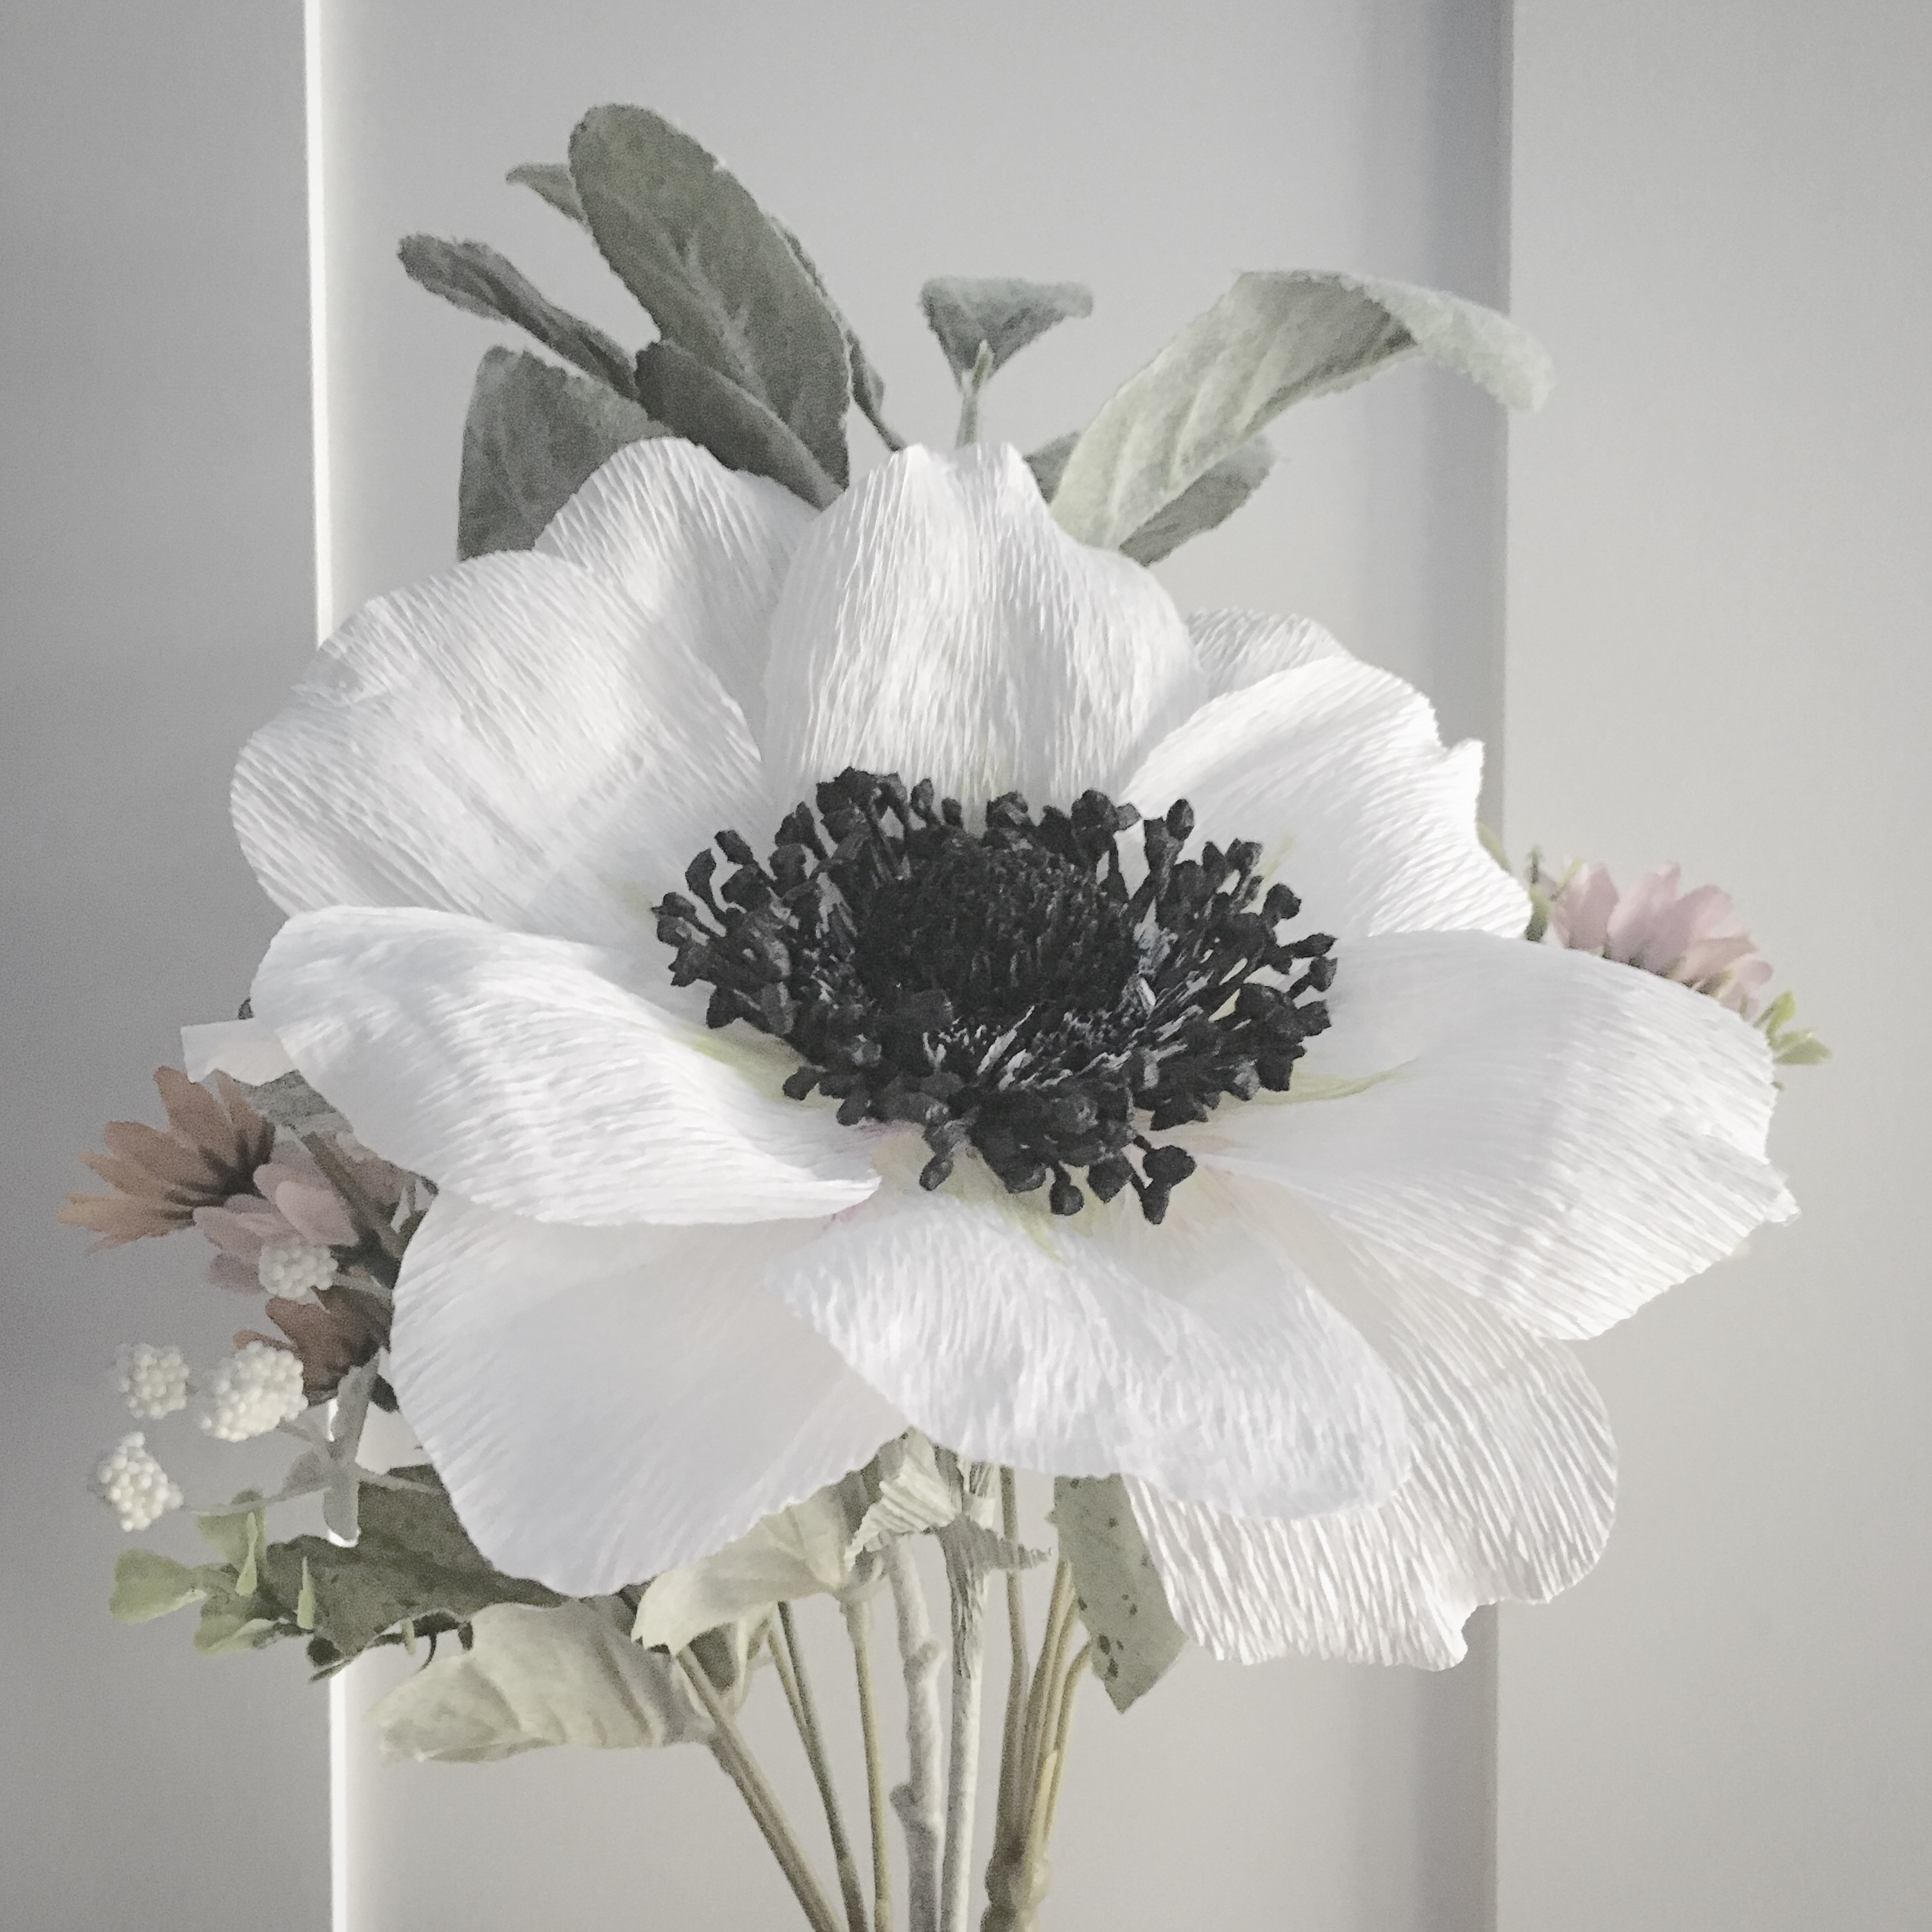 crepe paper anemone in white and black on a white background